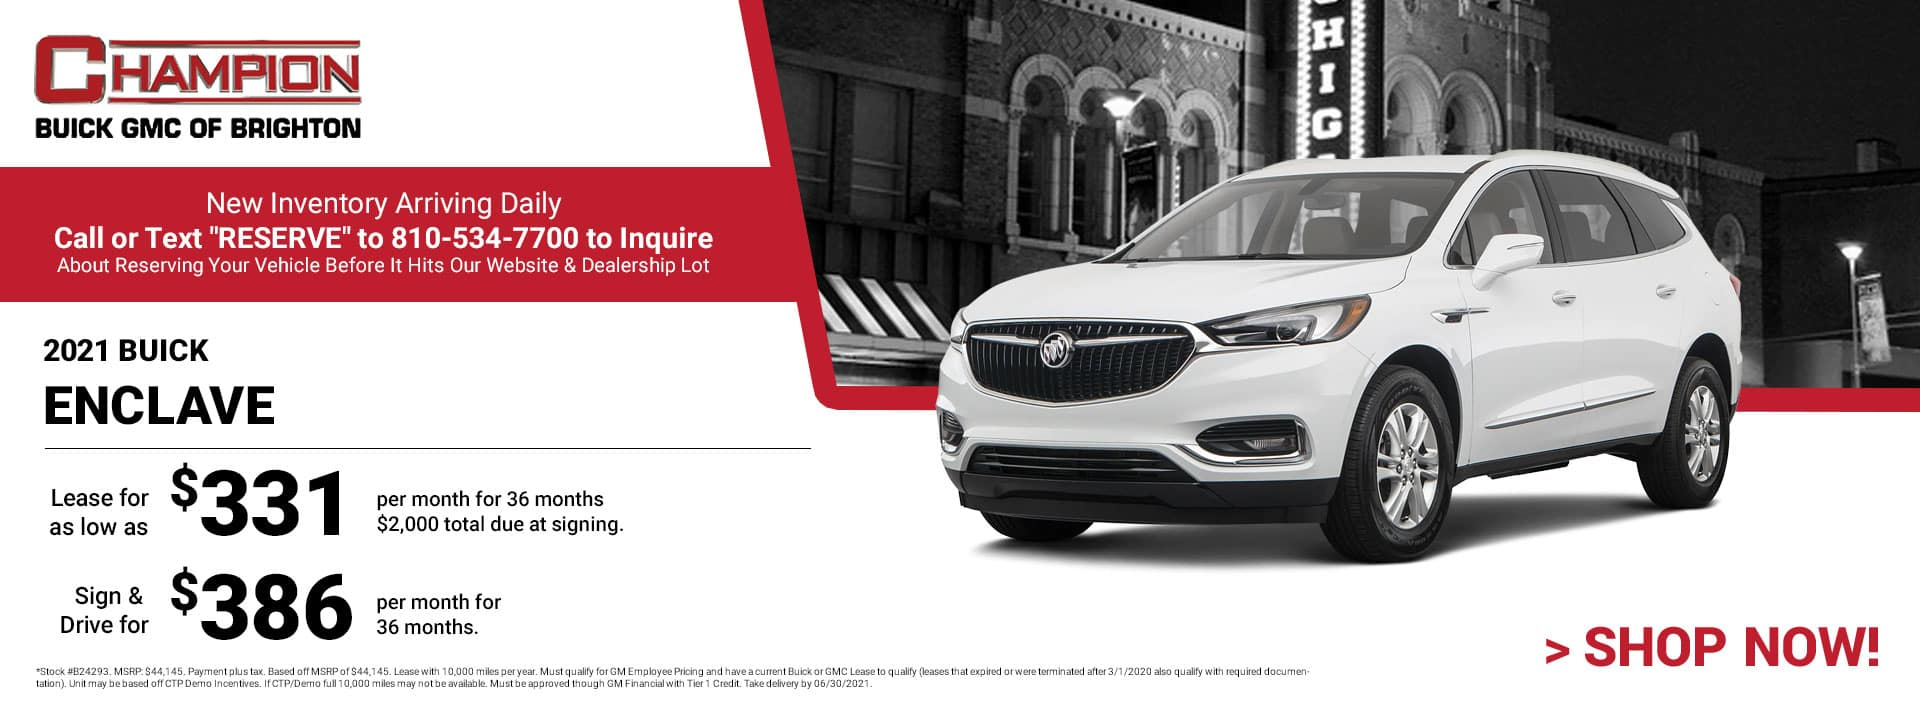 2021 Buick Enclave - Lease for just: $331 per month for 36 months $2,000 total due at signing. Sign & Drive for $386 per month for 36 months. *Stock #B24293. MSRP: $44,145